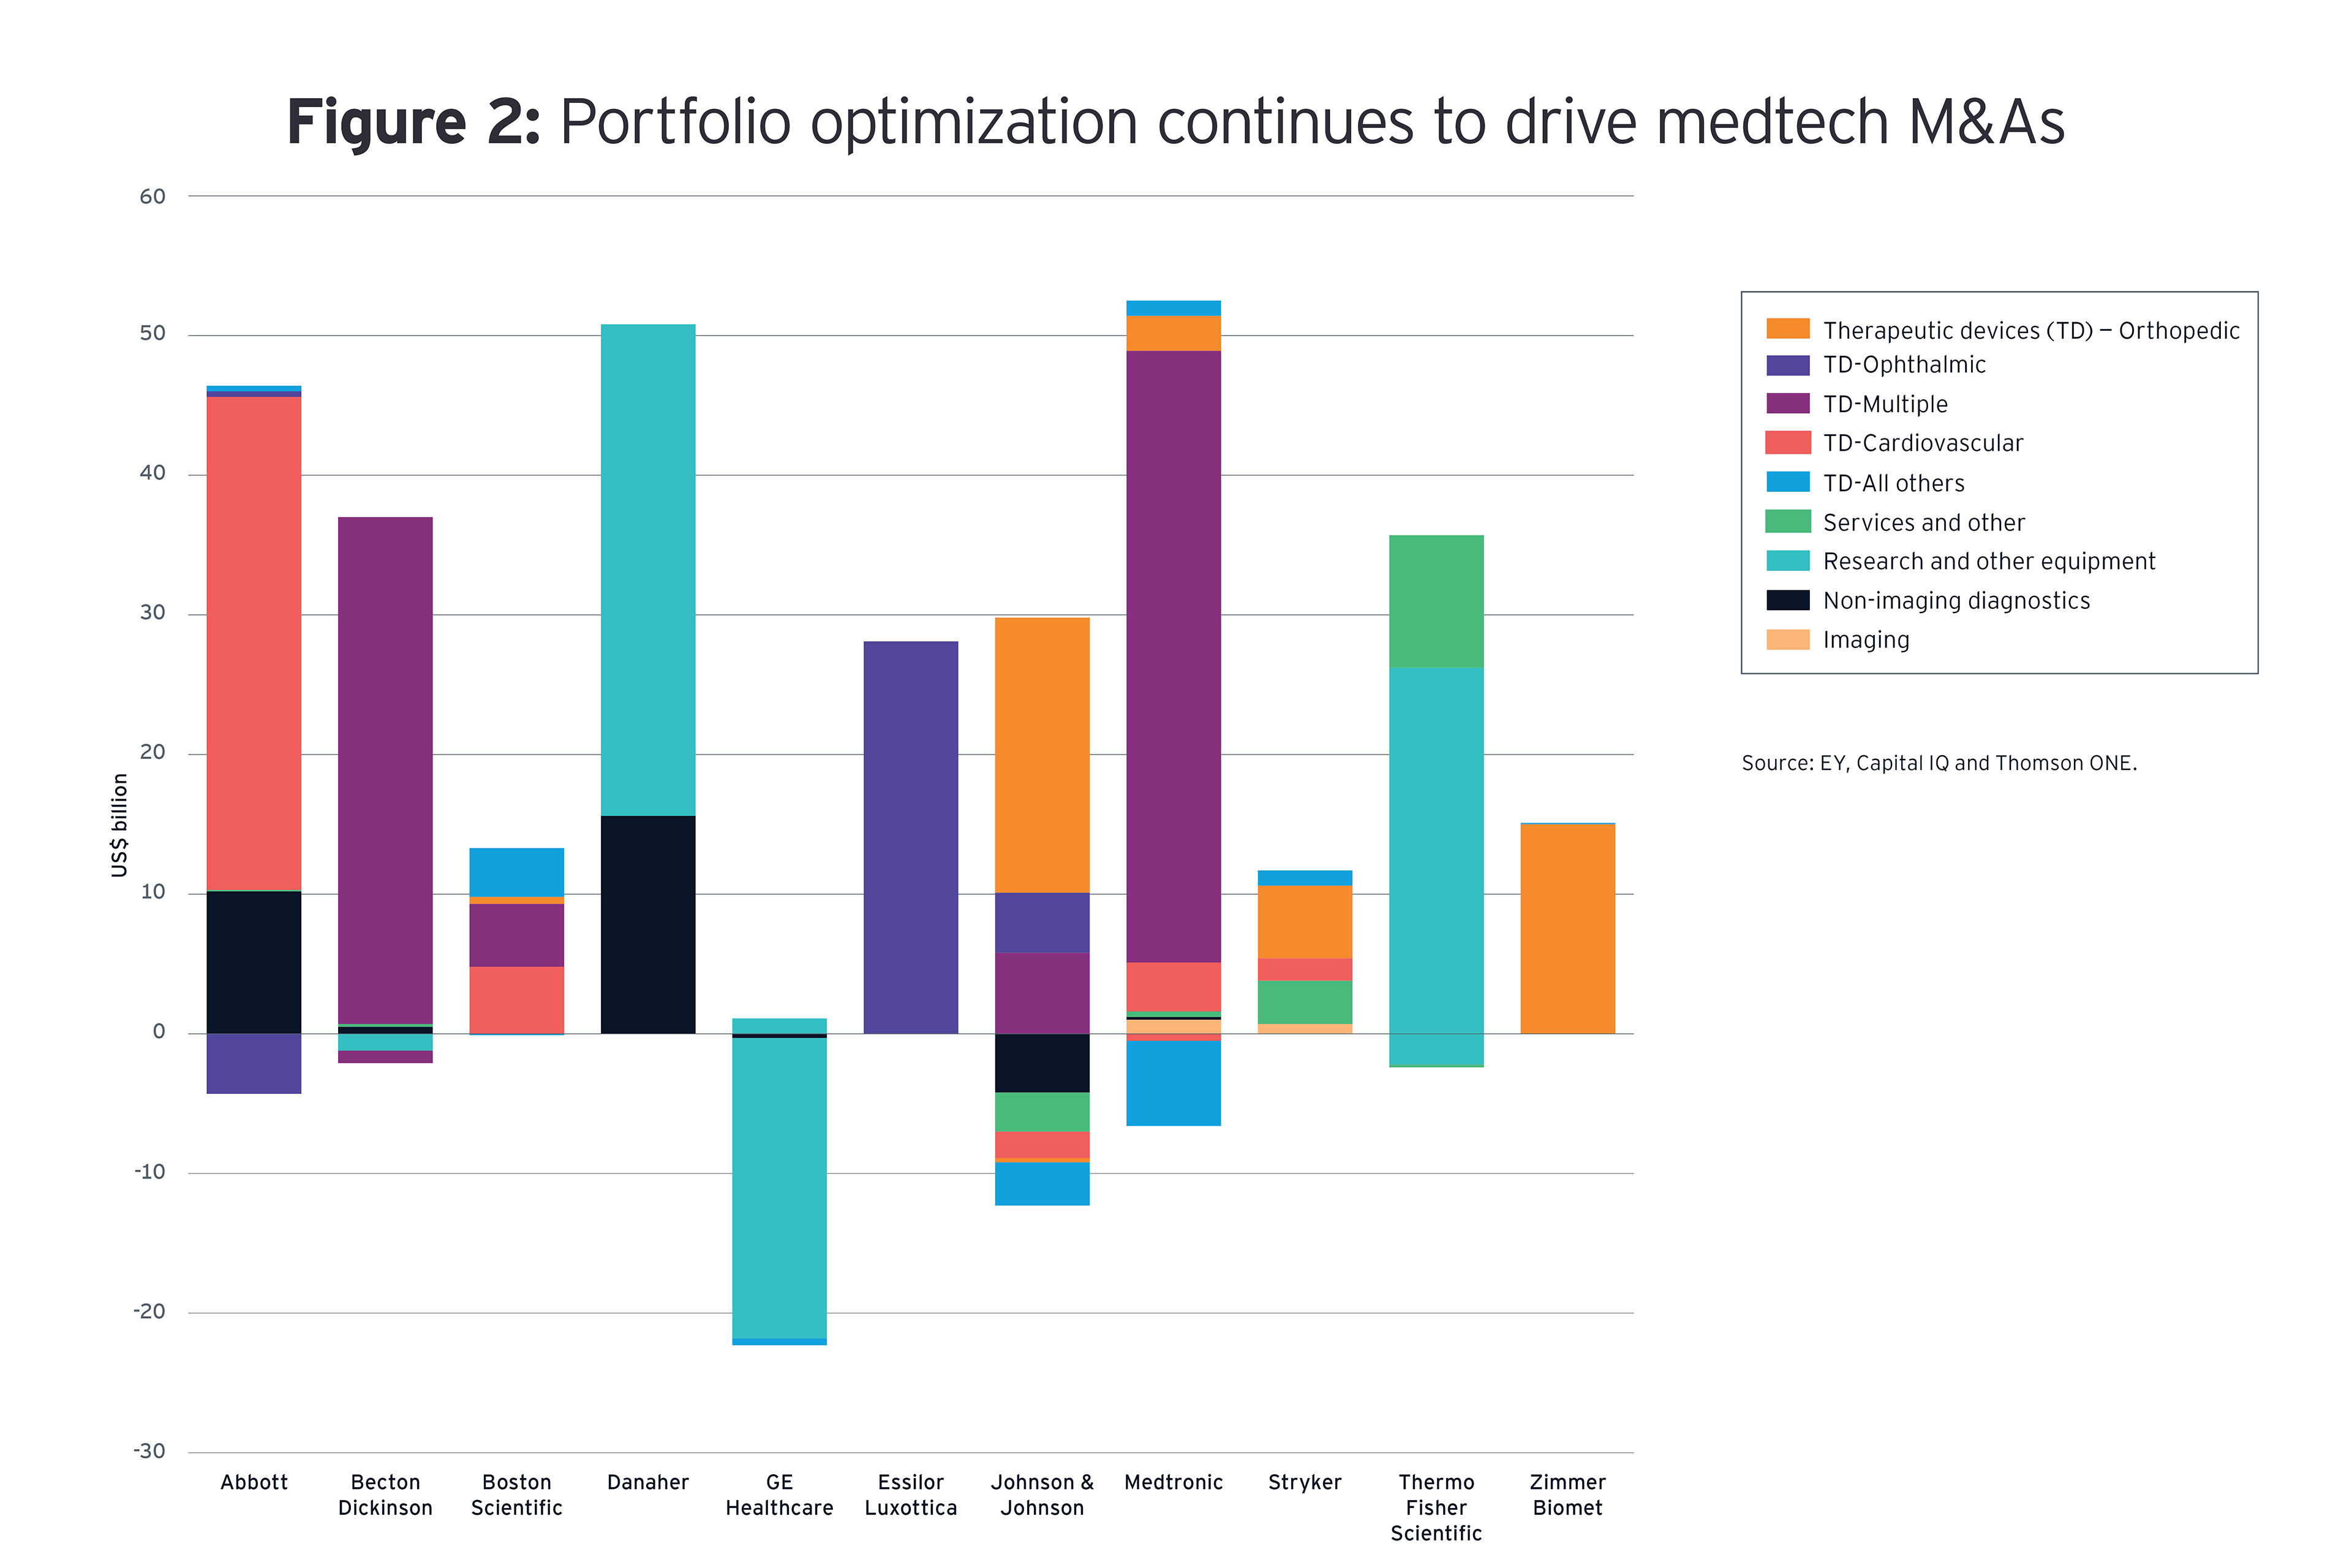 Figure 2. Medtechs have focused M&A on optimizing their portfolios